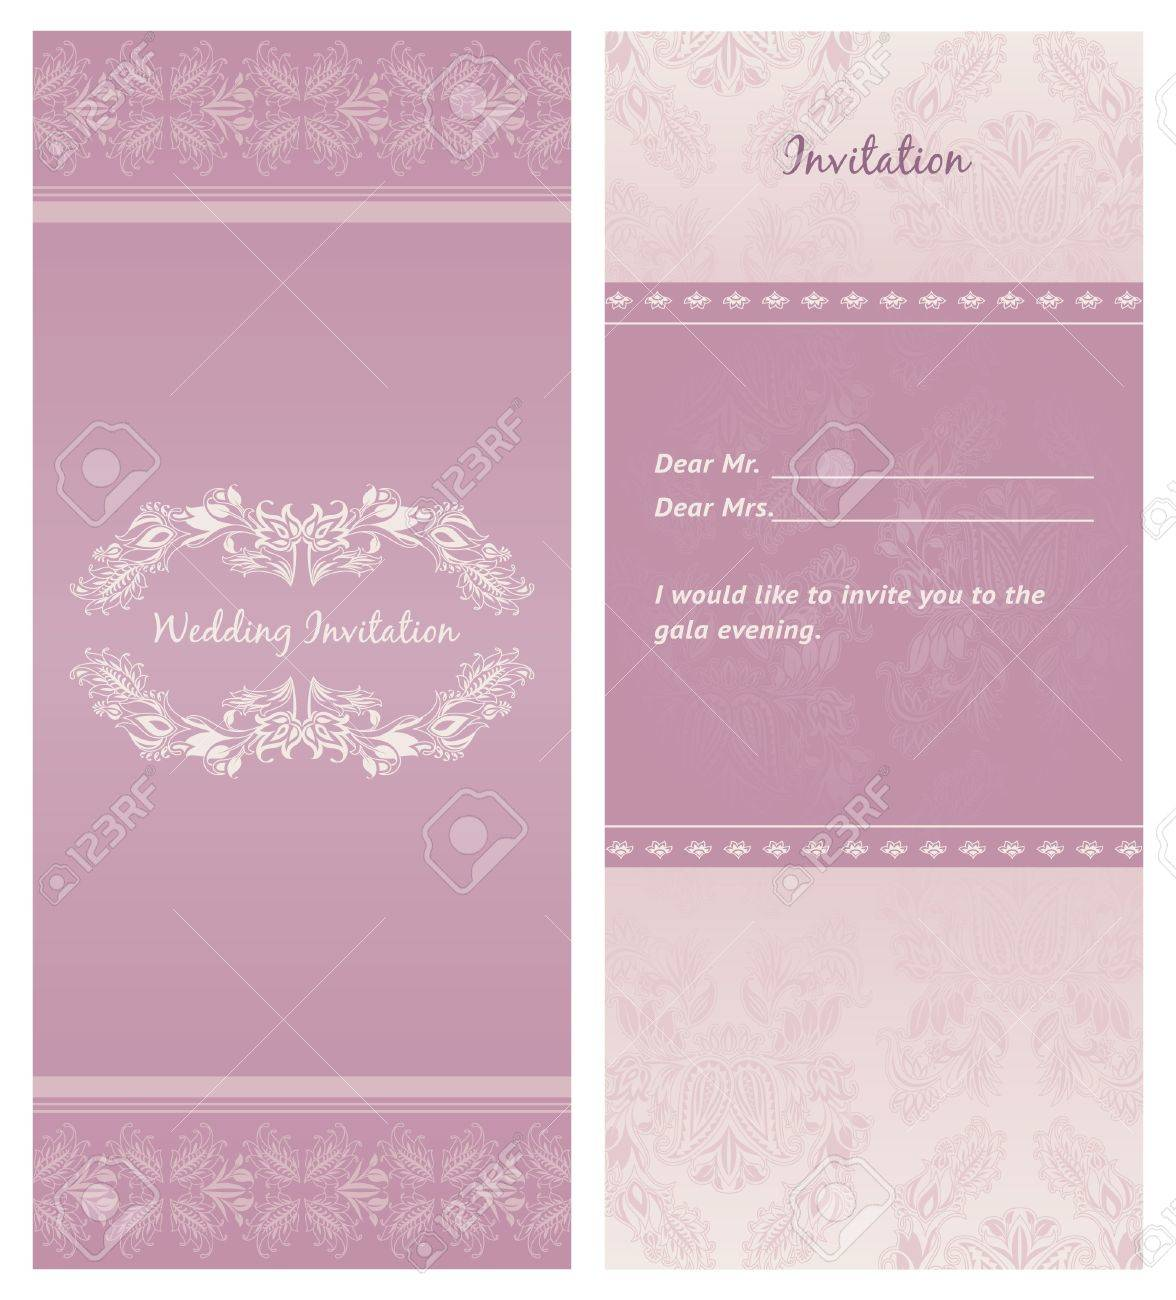 quotes for wedding invitations cards wedding invitation software invitation card design software free best wedding card designs